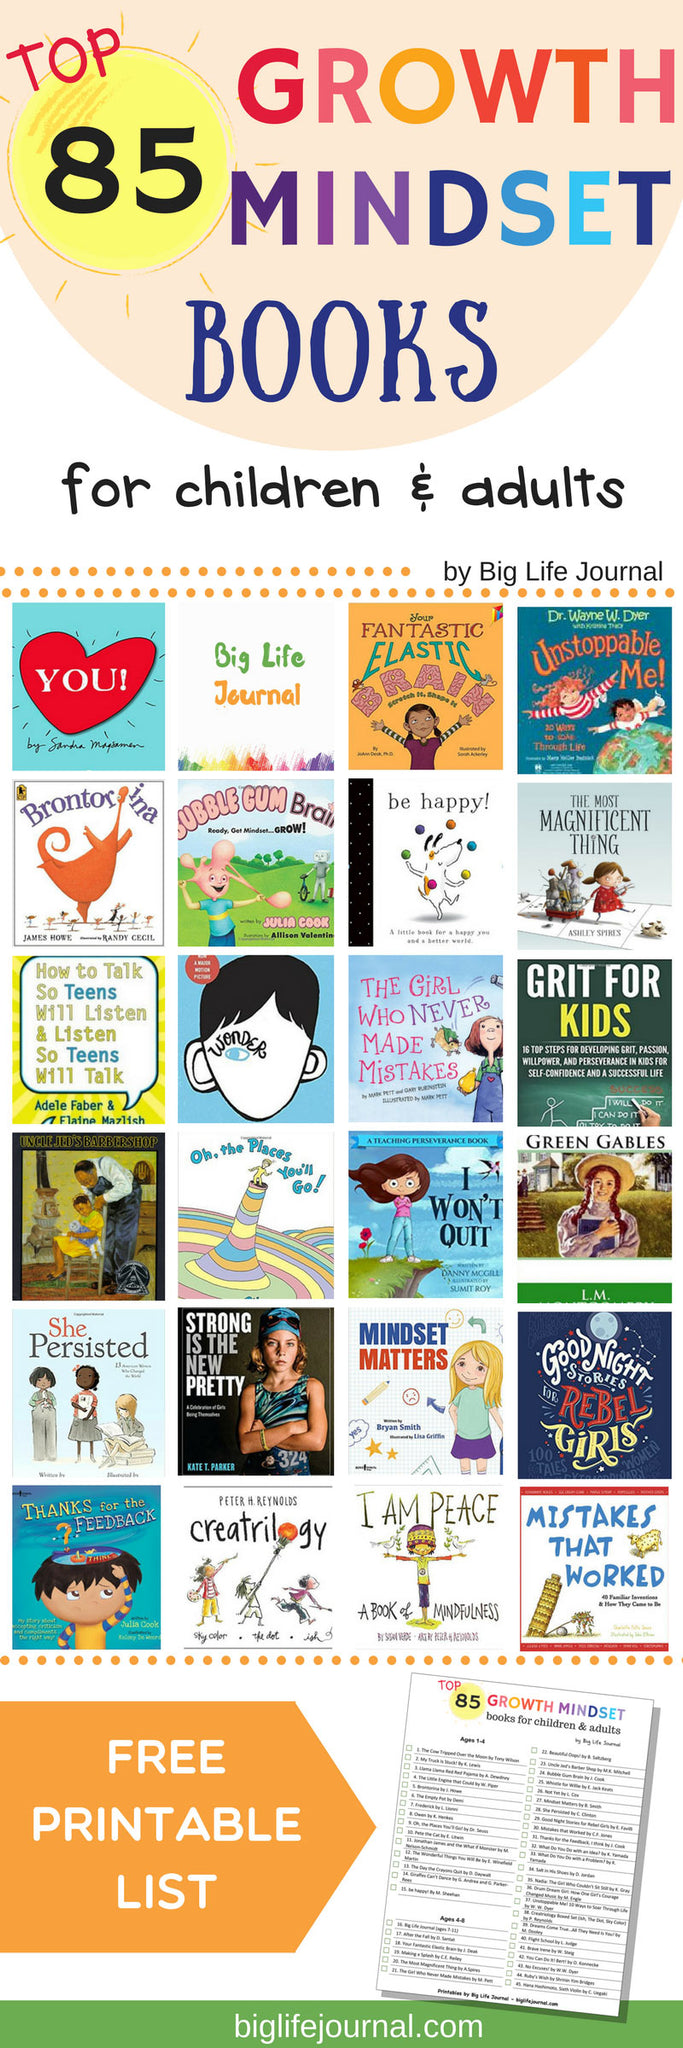 Top 85 growth mindset books for children and adults big life journal save a list of 75 top growth mindset books for children and adults to help build resilience fandeluxe Image collections